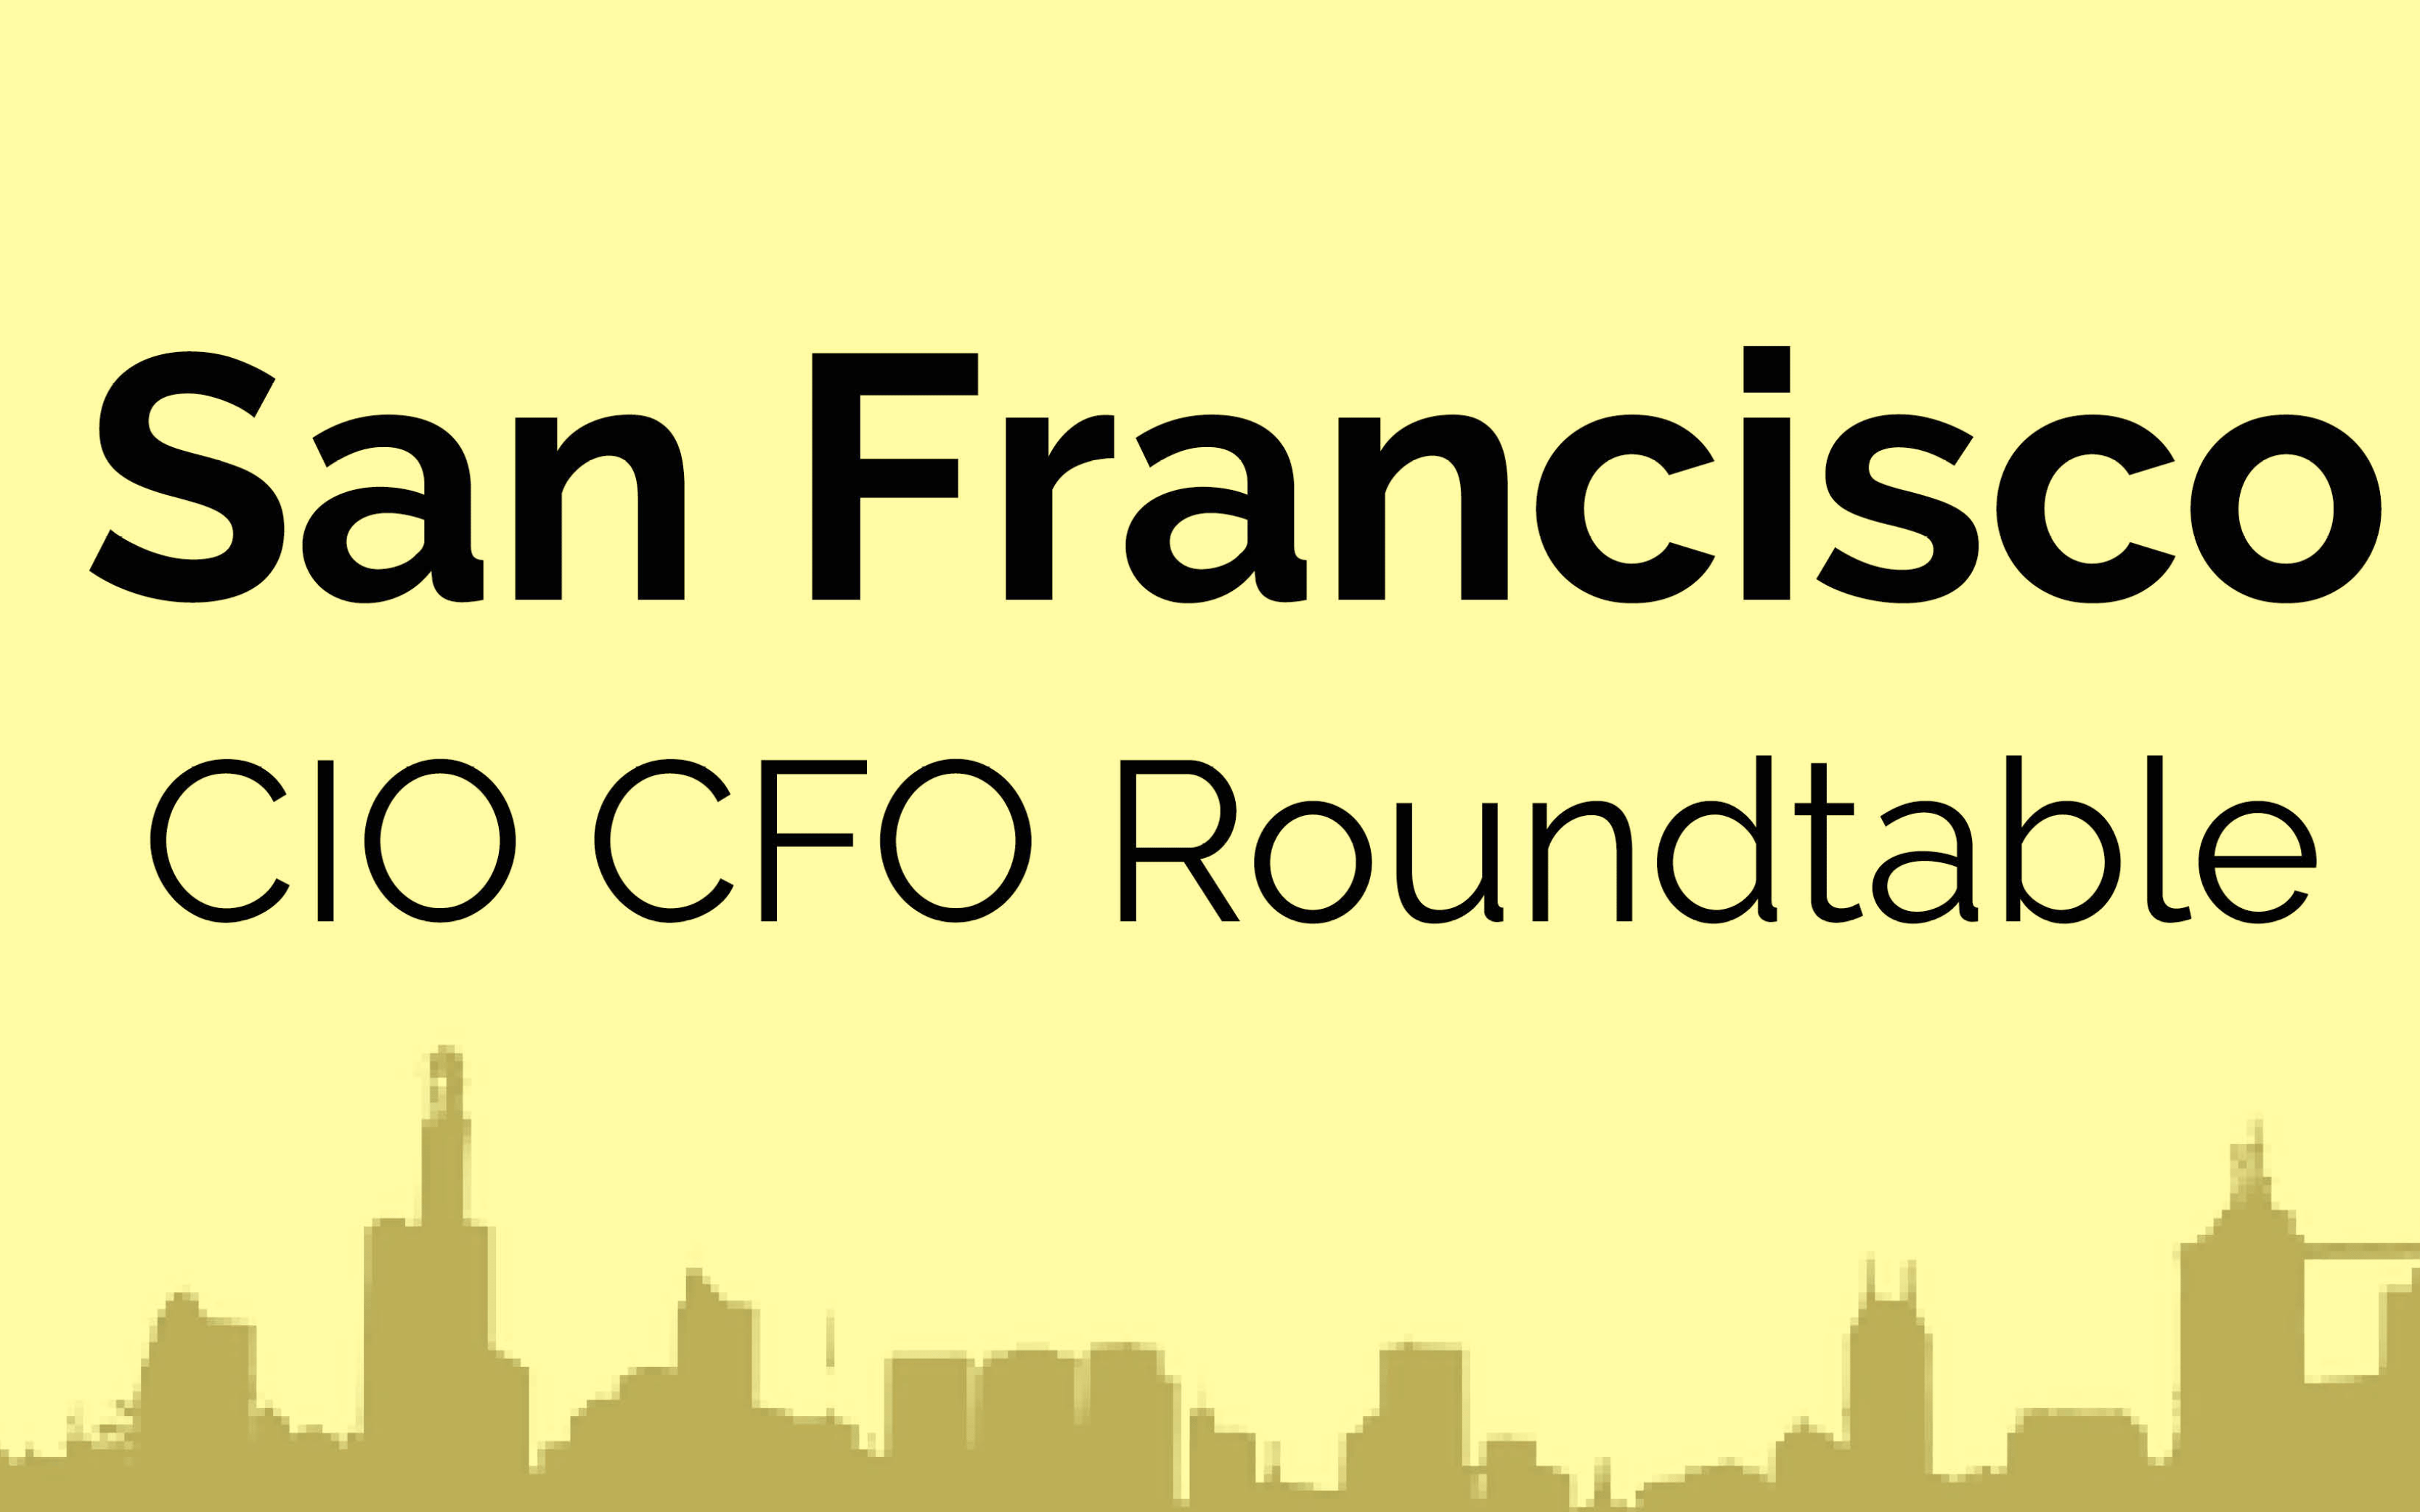 CIO CFO Executive Roundtable: San Francisco